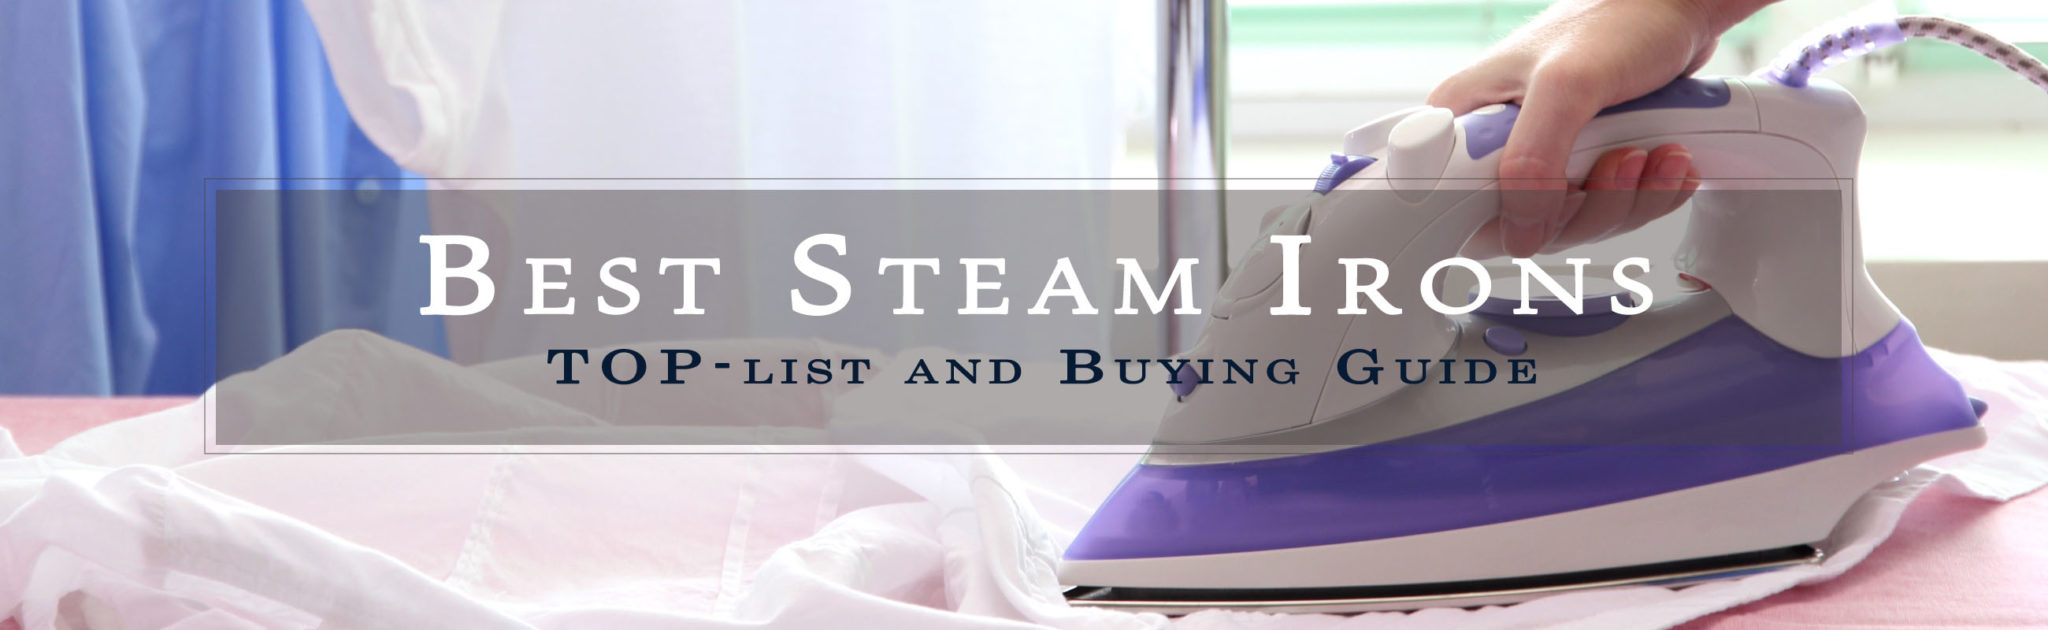 Best steam iron